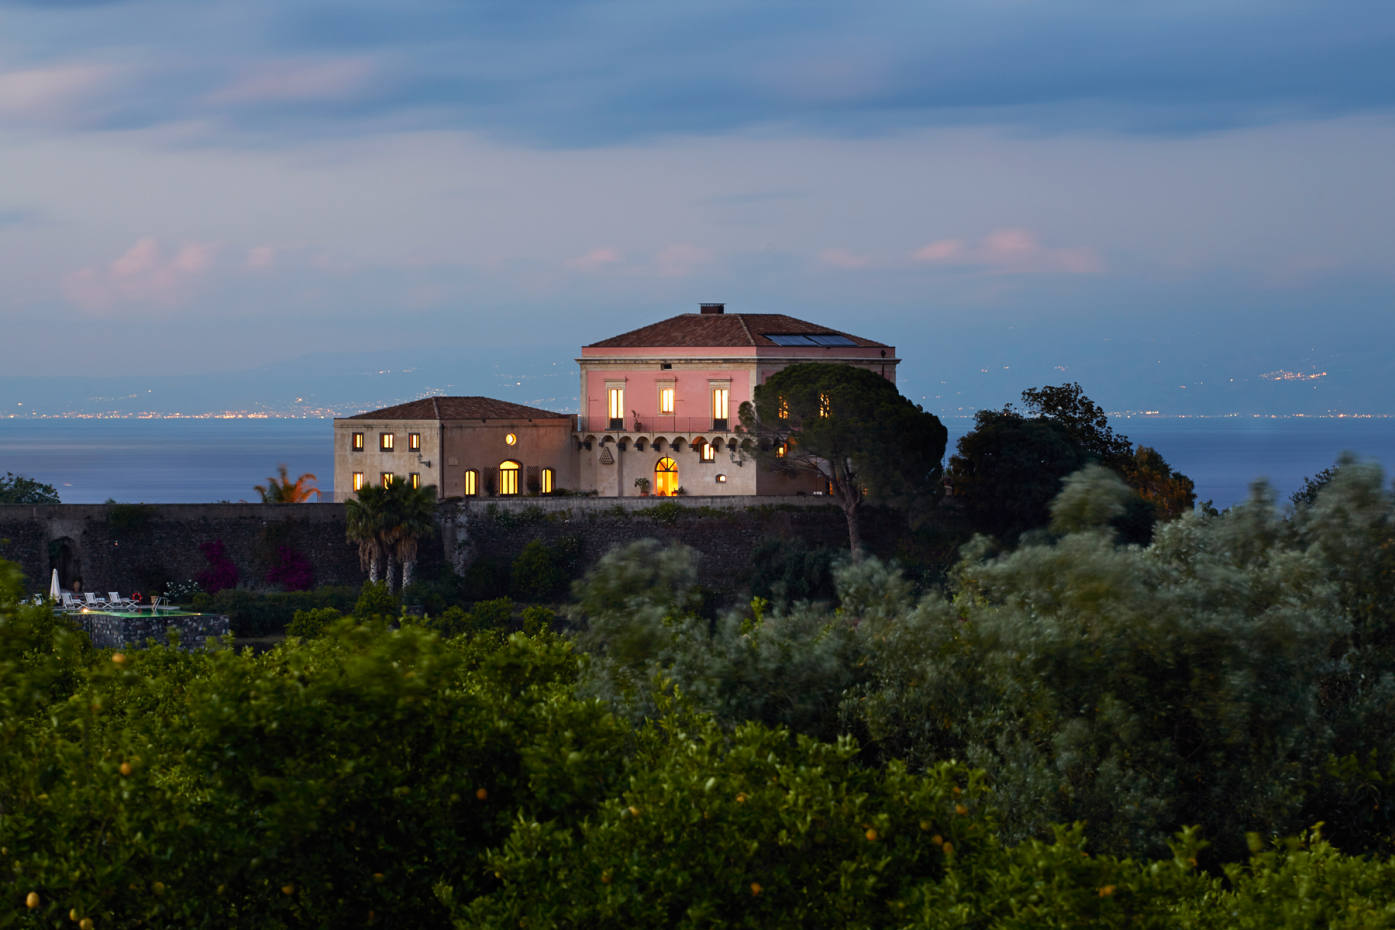 The villa in Sicily where Christian Puglisi will host two cooking workshops in 2021.